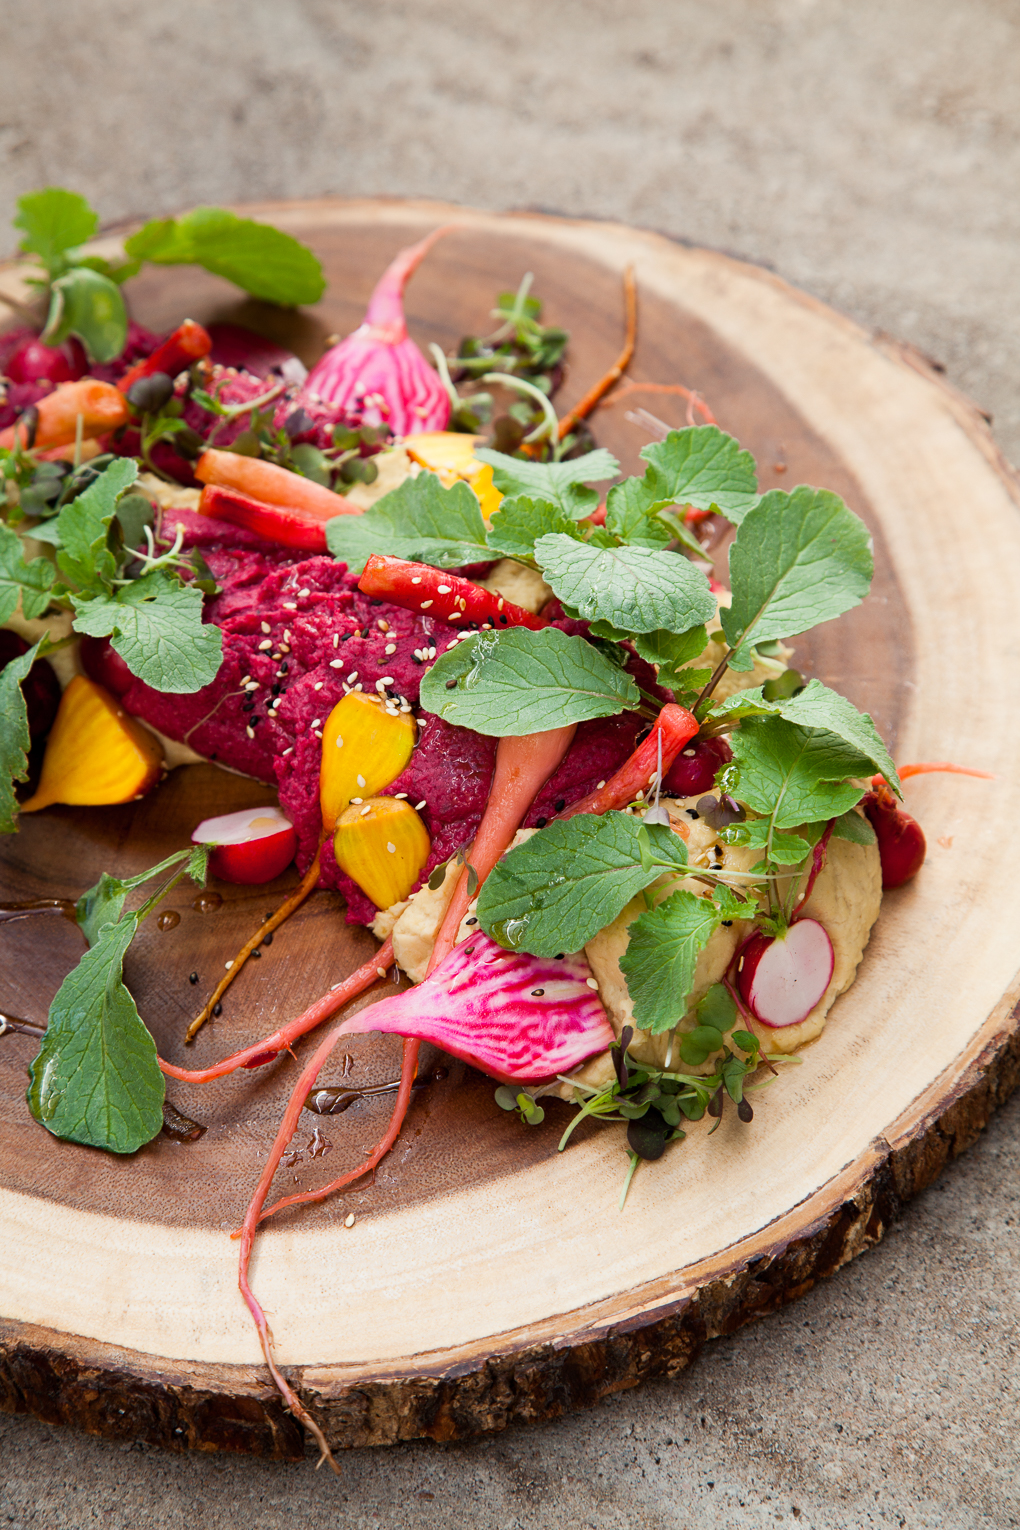 beet hummus, fresh & pickled farm vegetables, spring microgreen spread. Photograph by St. Louis Photographer Jonathan Gayman.